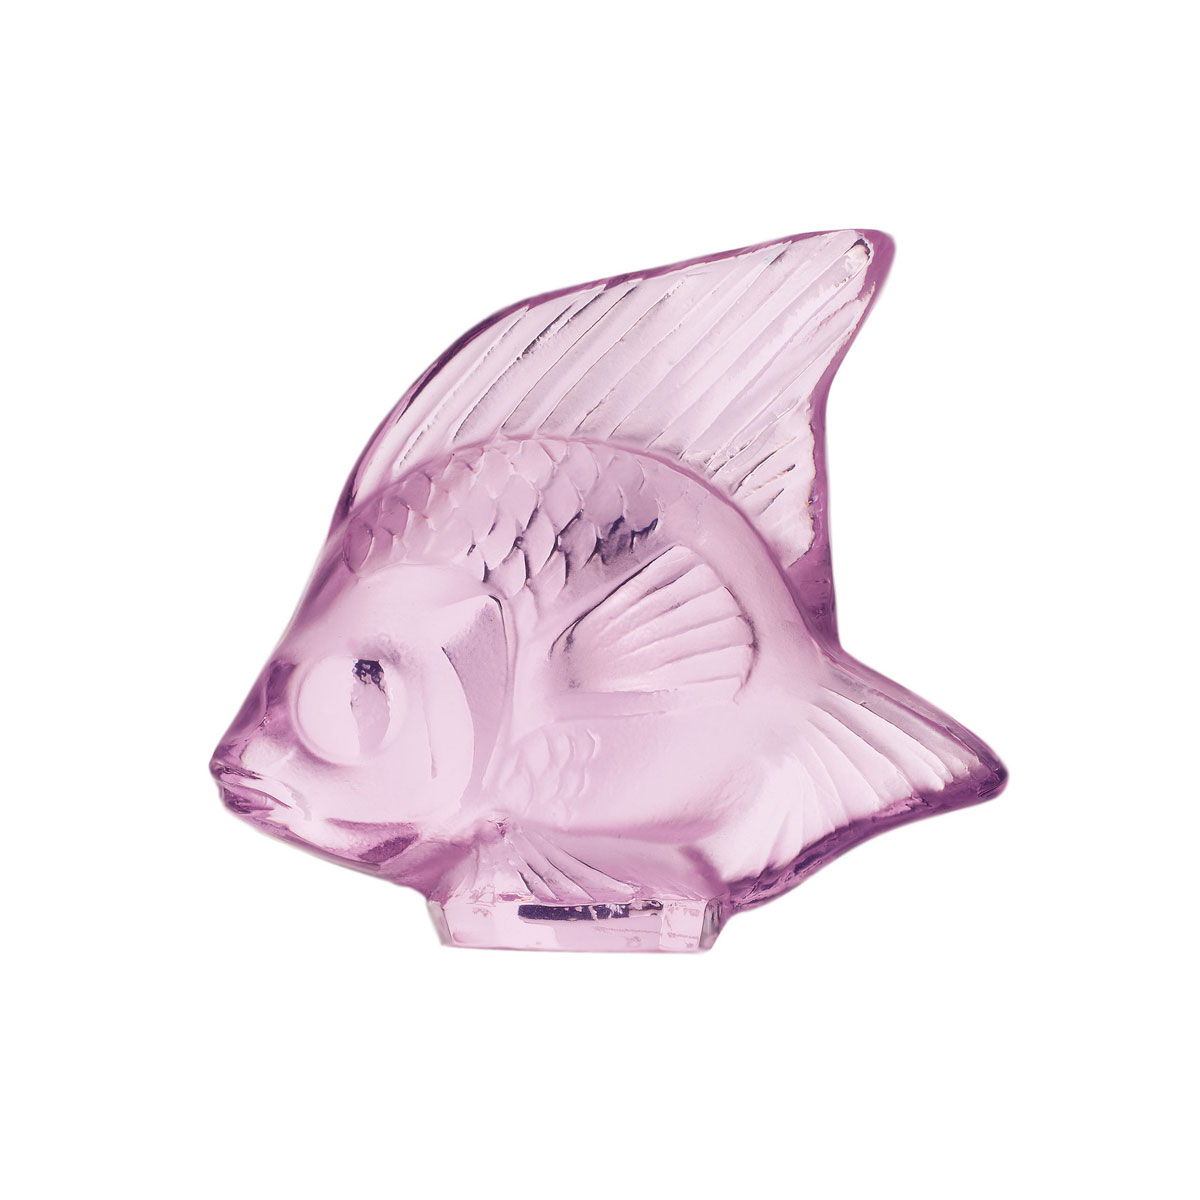 Lalique Crystal, Pink Fish Sculpture